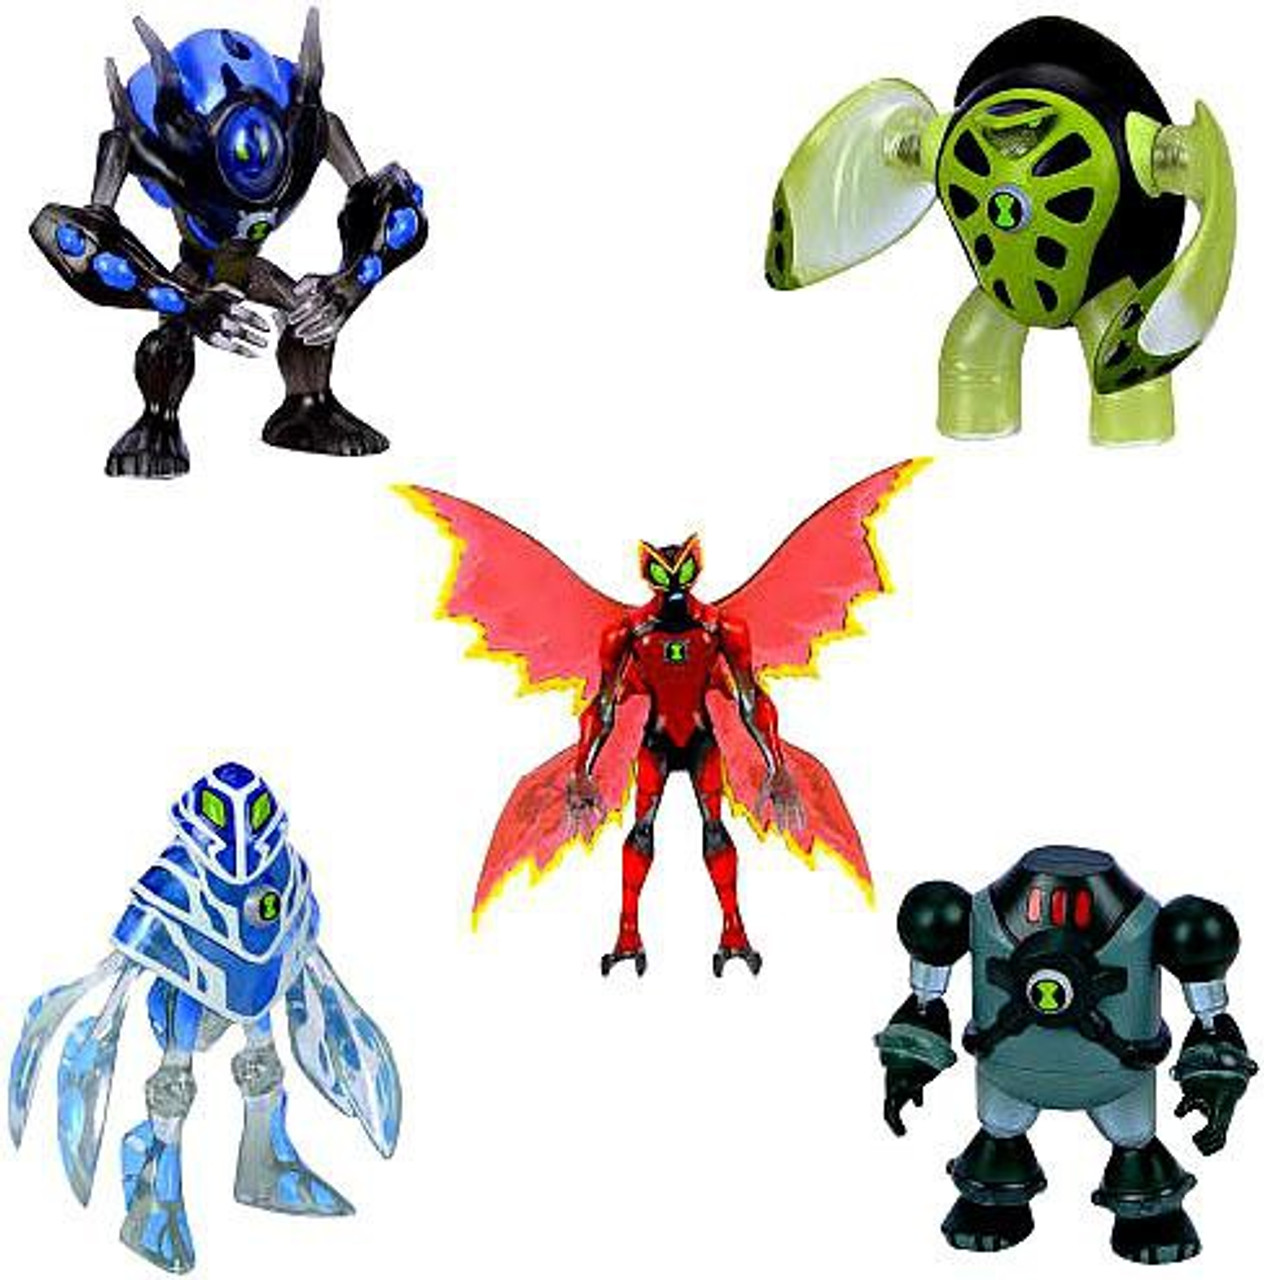 Ben 10 Alien Exclusive Action Figure 5-Pack #2